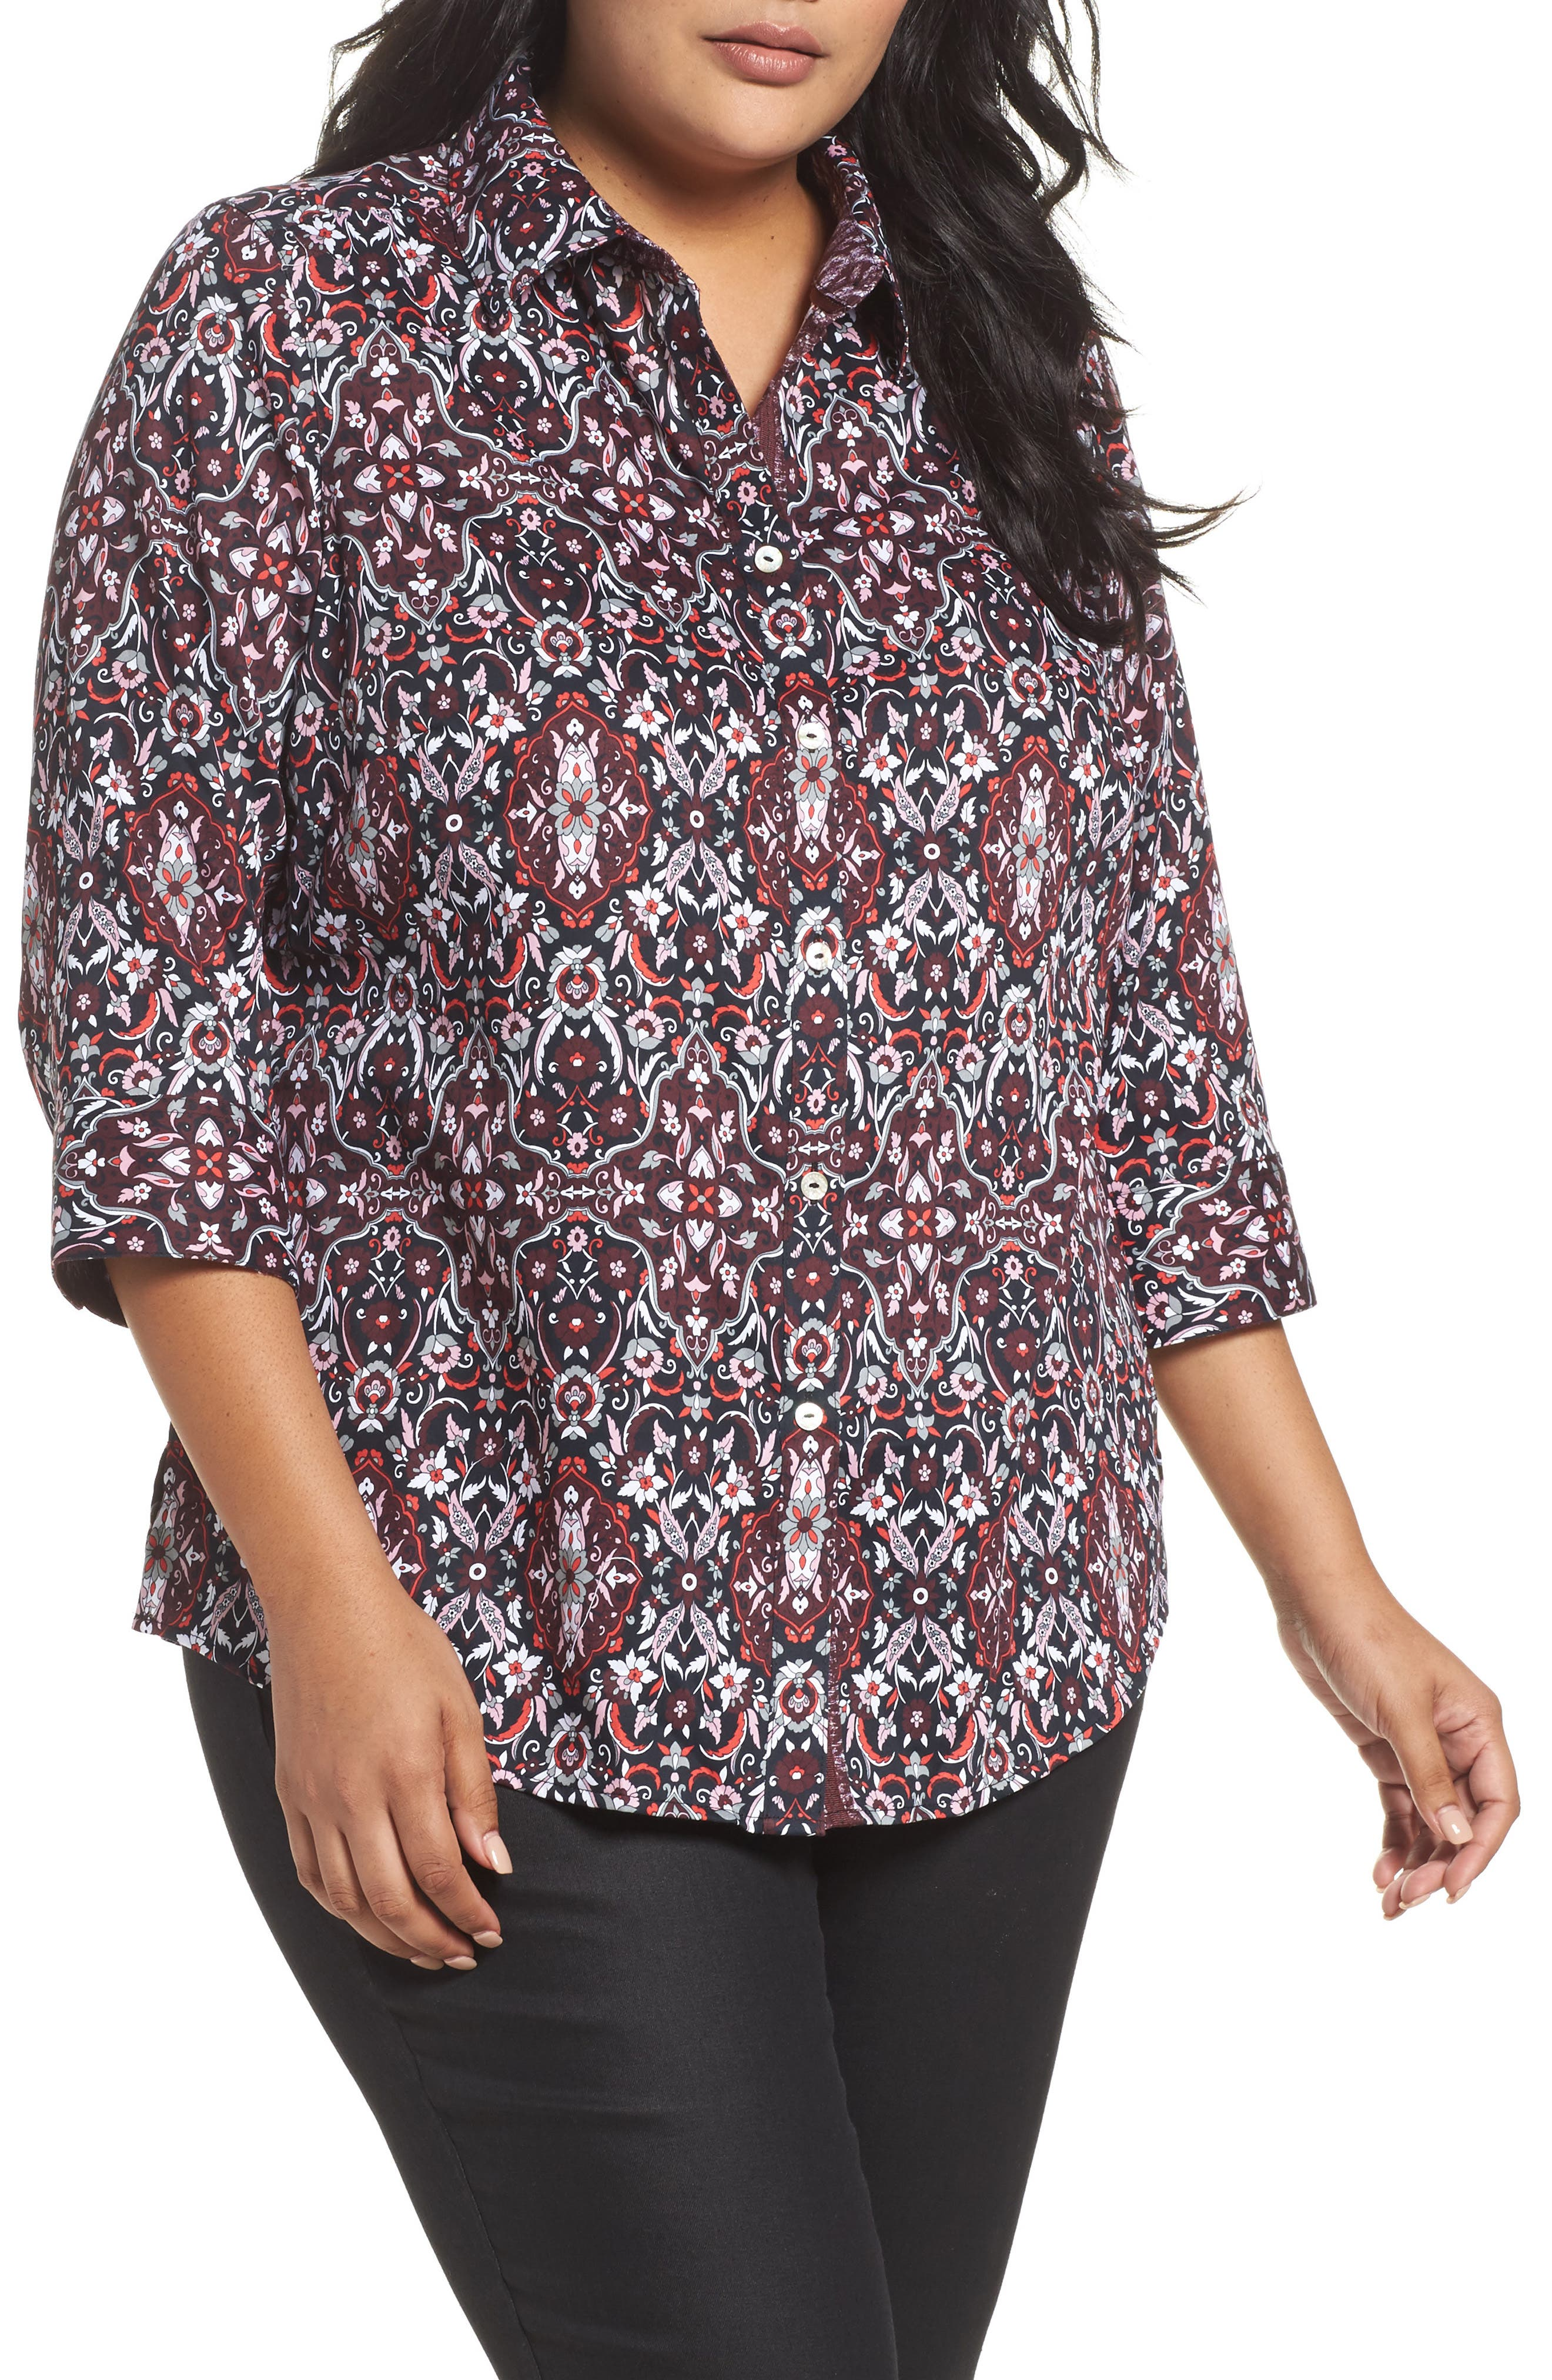 Alternate Image 1 Selected - Foxcroft Ava Heirloom Paisley Print Cotton Shirt (Plus Size)